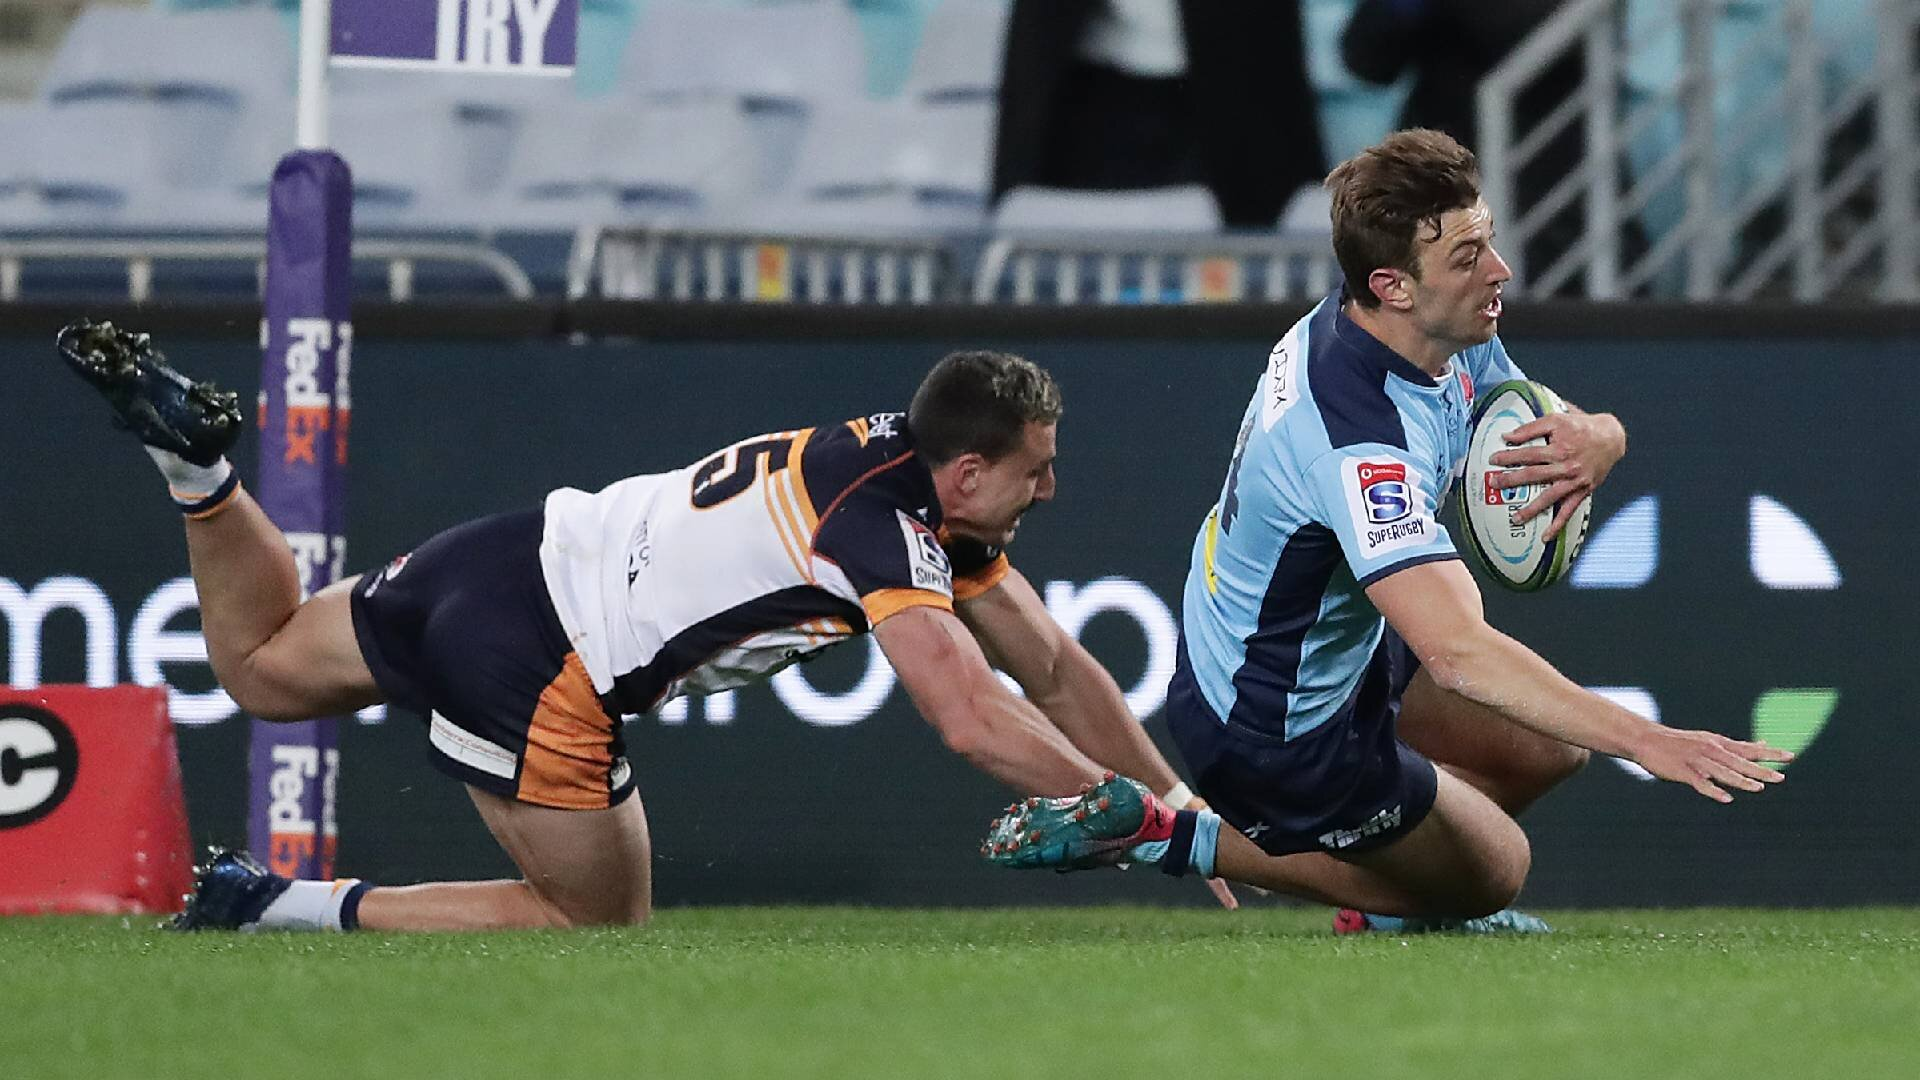 More disruptions for Super Rugby as plug pulled on pre-season match